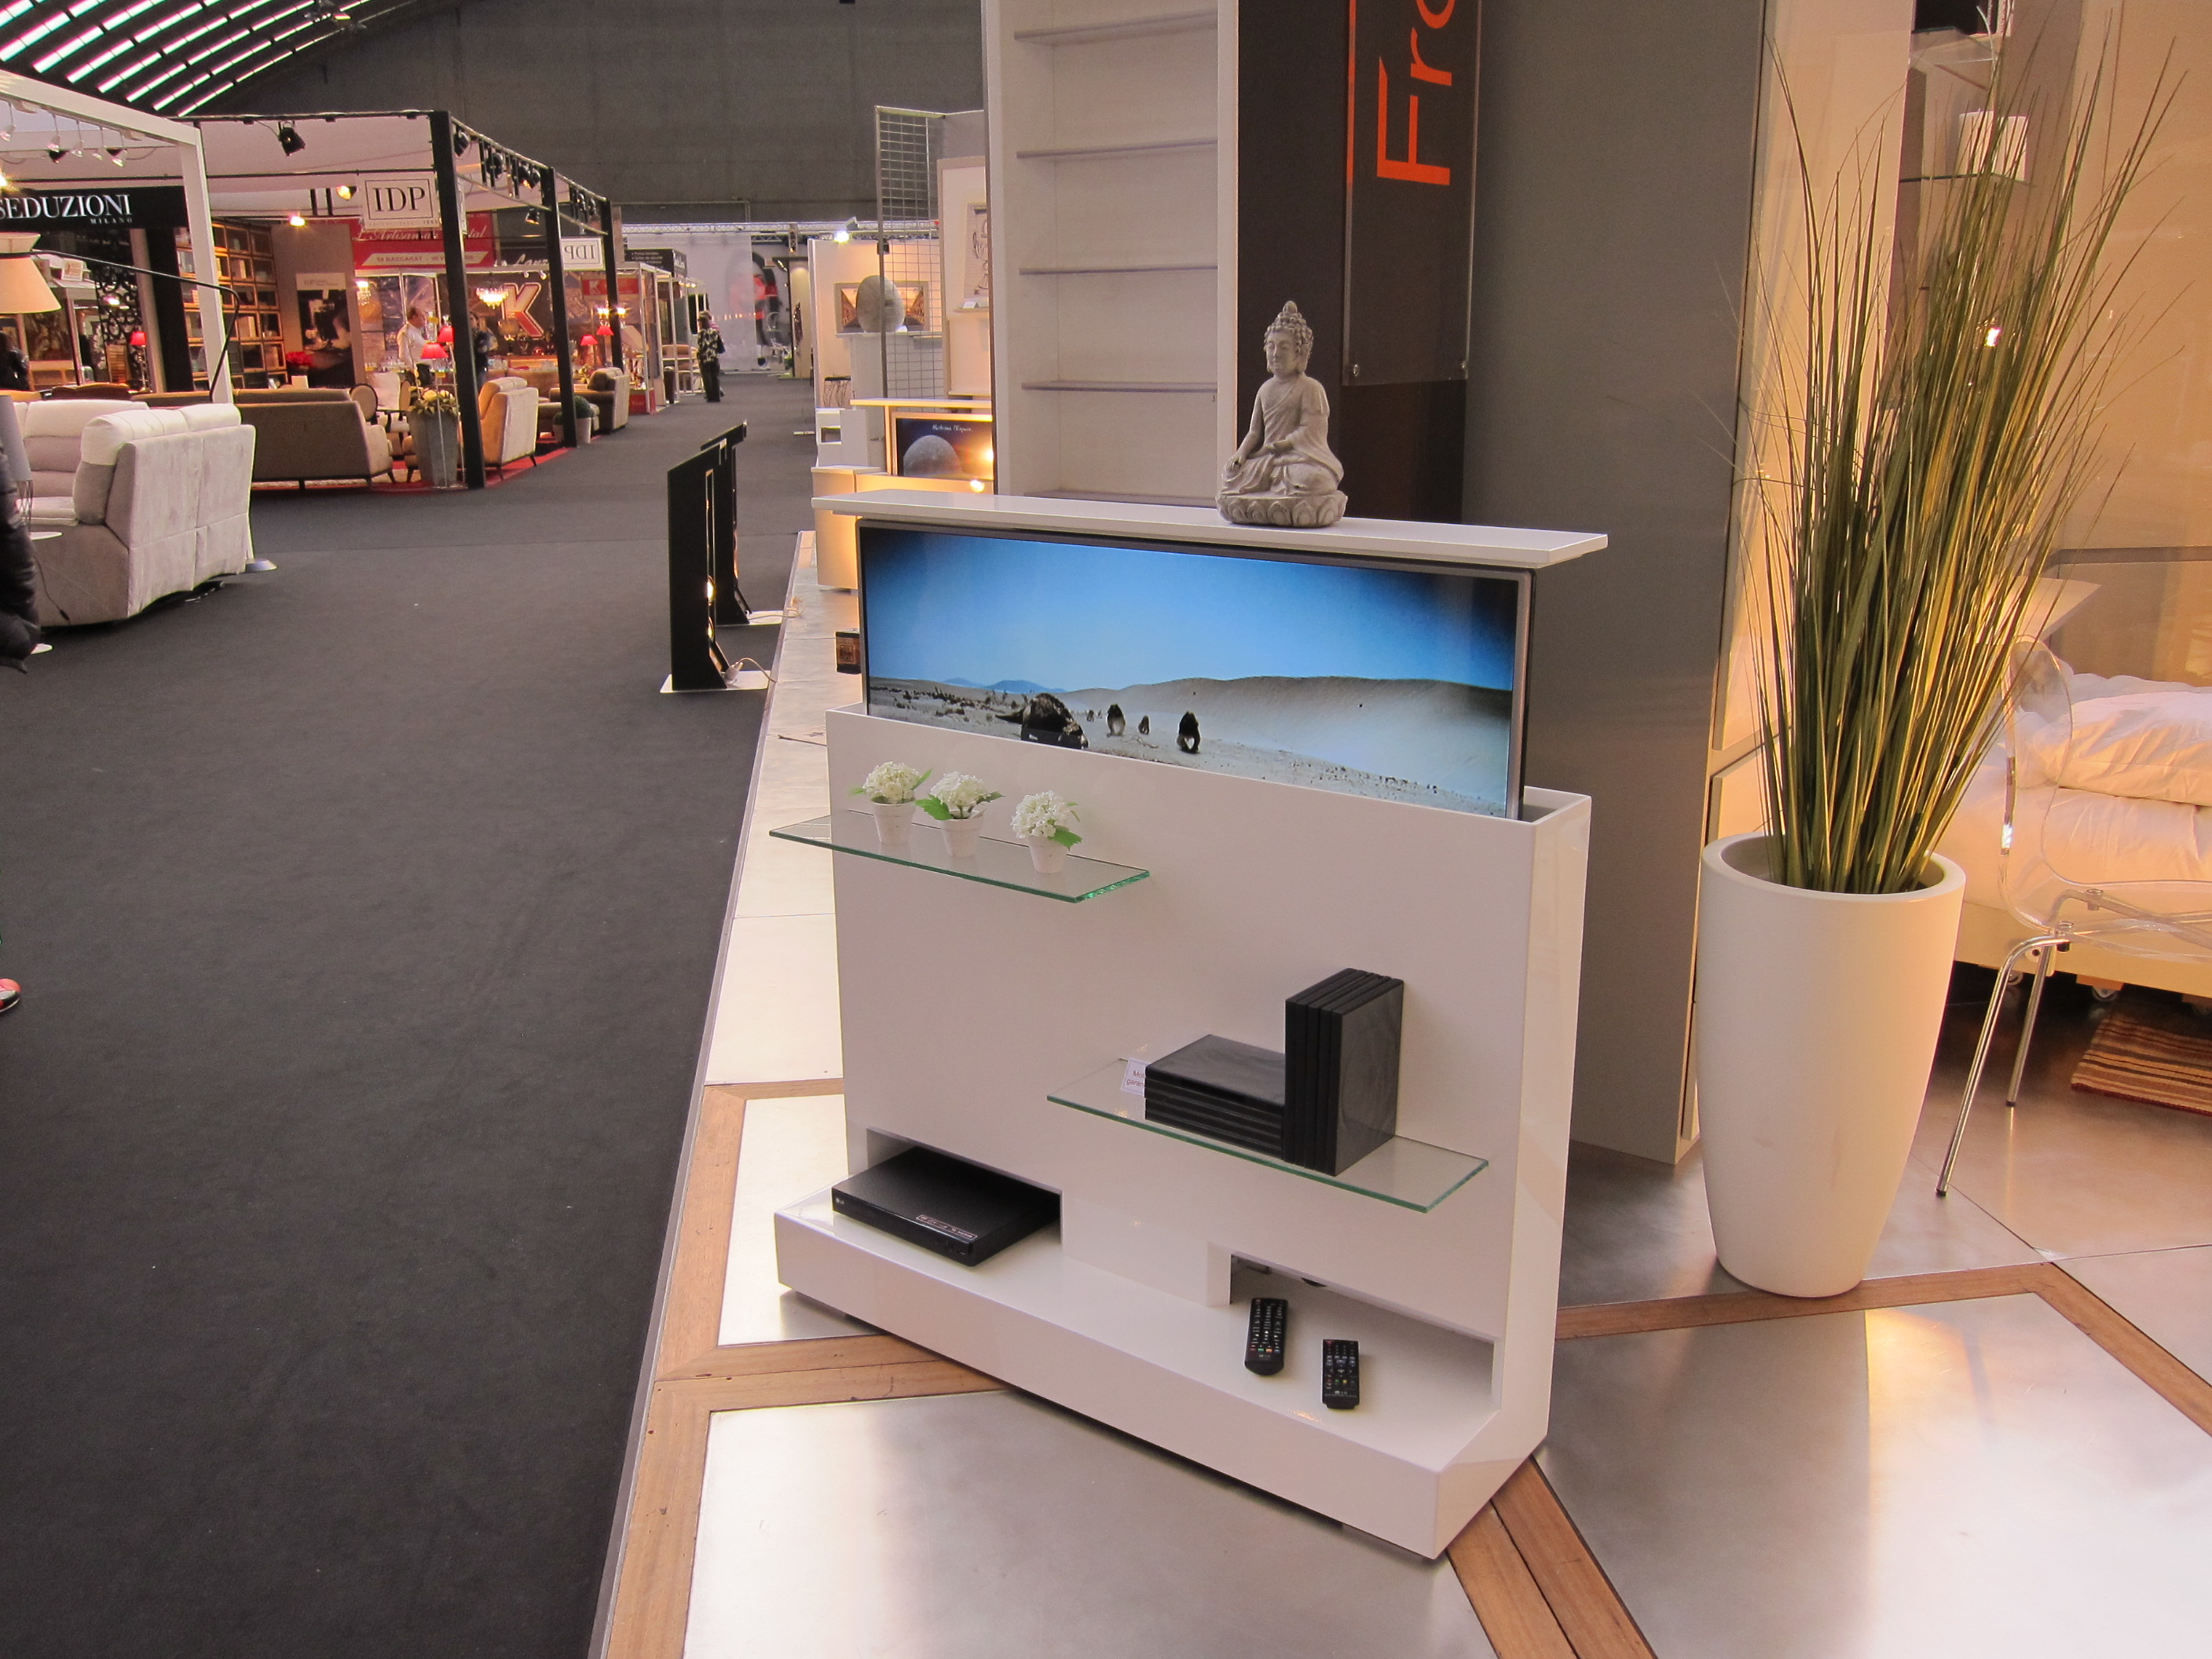 Meuble Tv Escamotable - Le Mobilier Gain De Place Fran Ois Desile[mjhdah]https://www.cobra.fr/media/catalog/product/m/2/m2p2n1gl_4.png